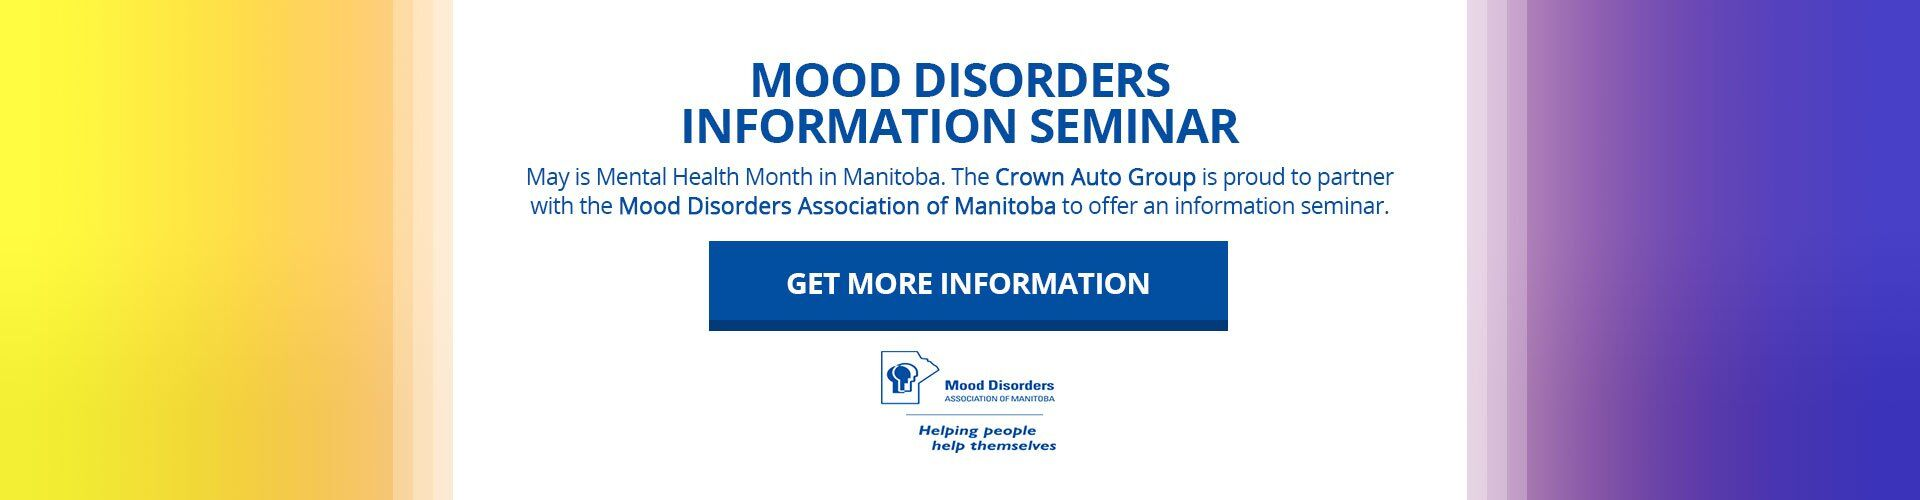 Mood Disorders Information Seminar